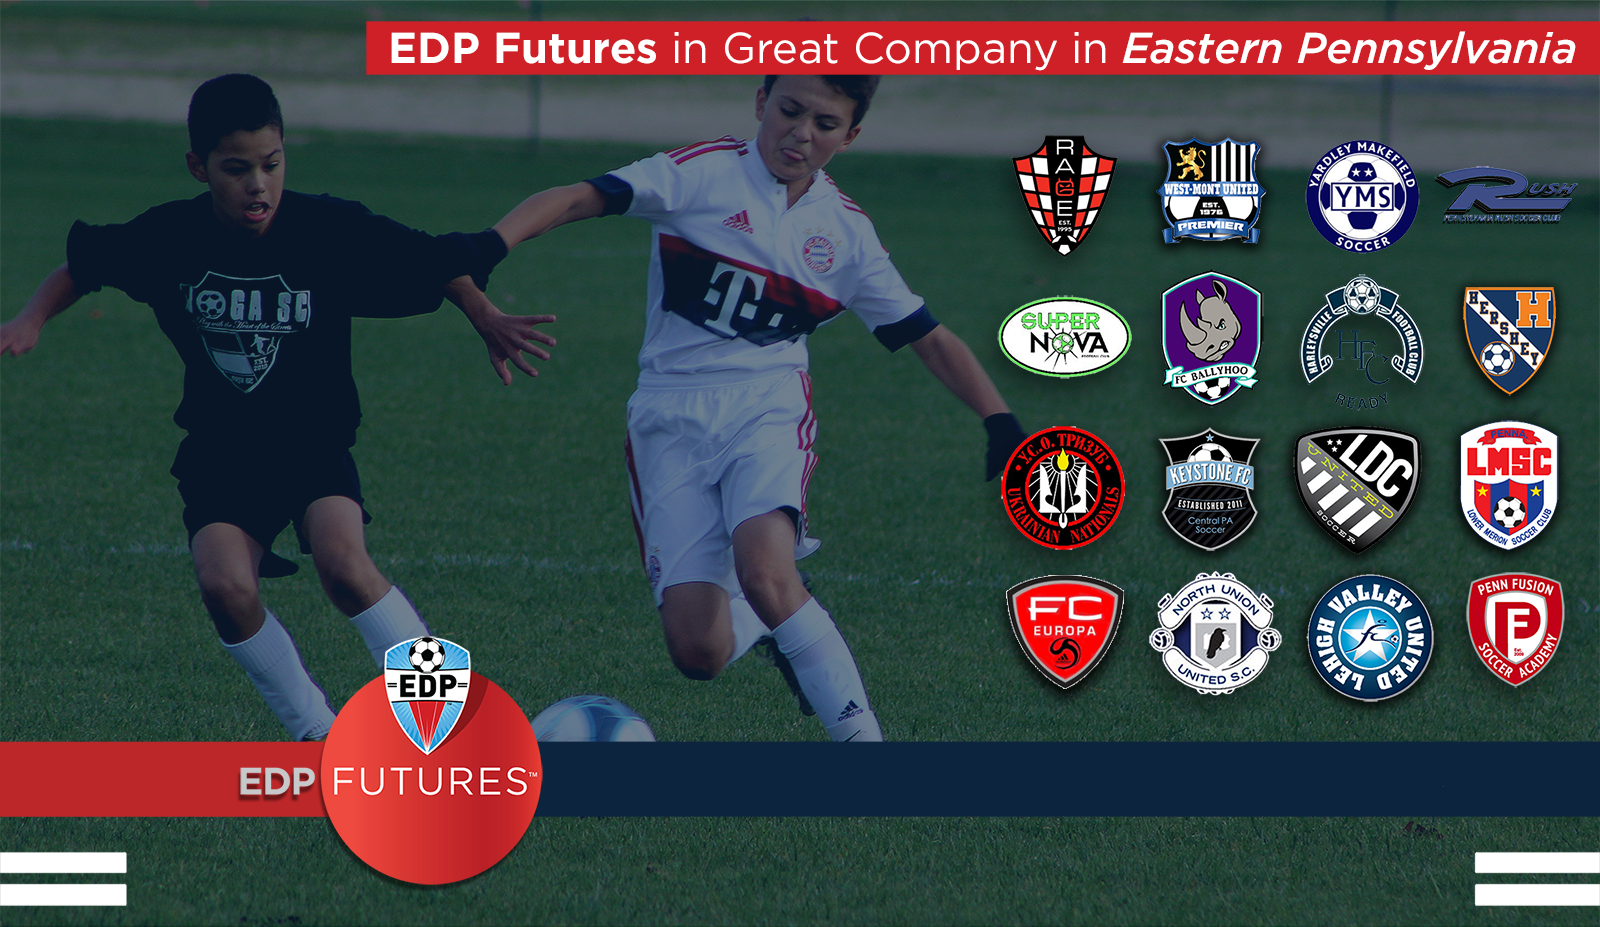 EDP Futures in Eastern PA